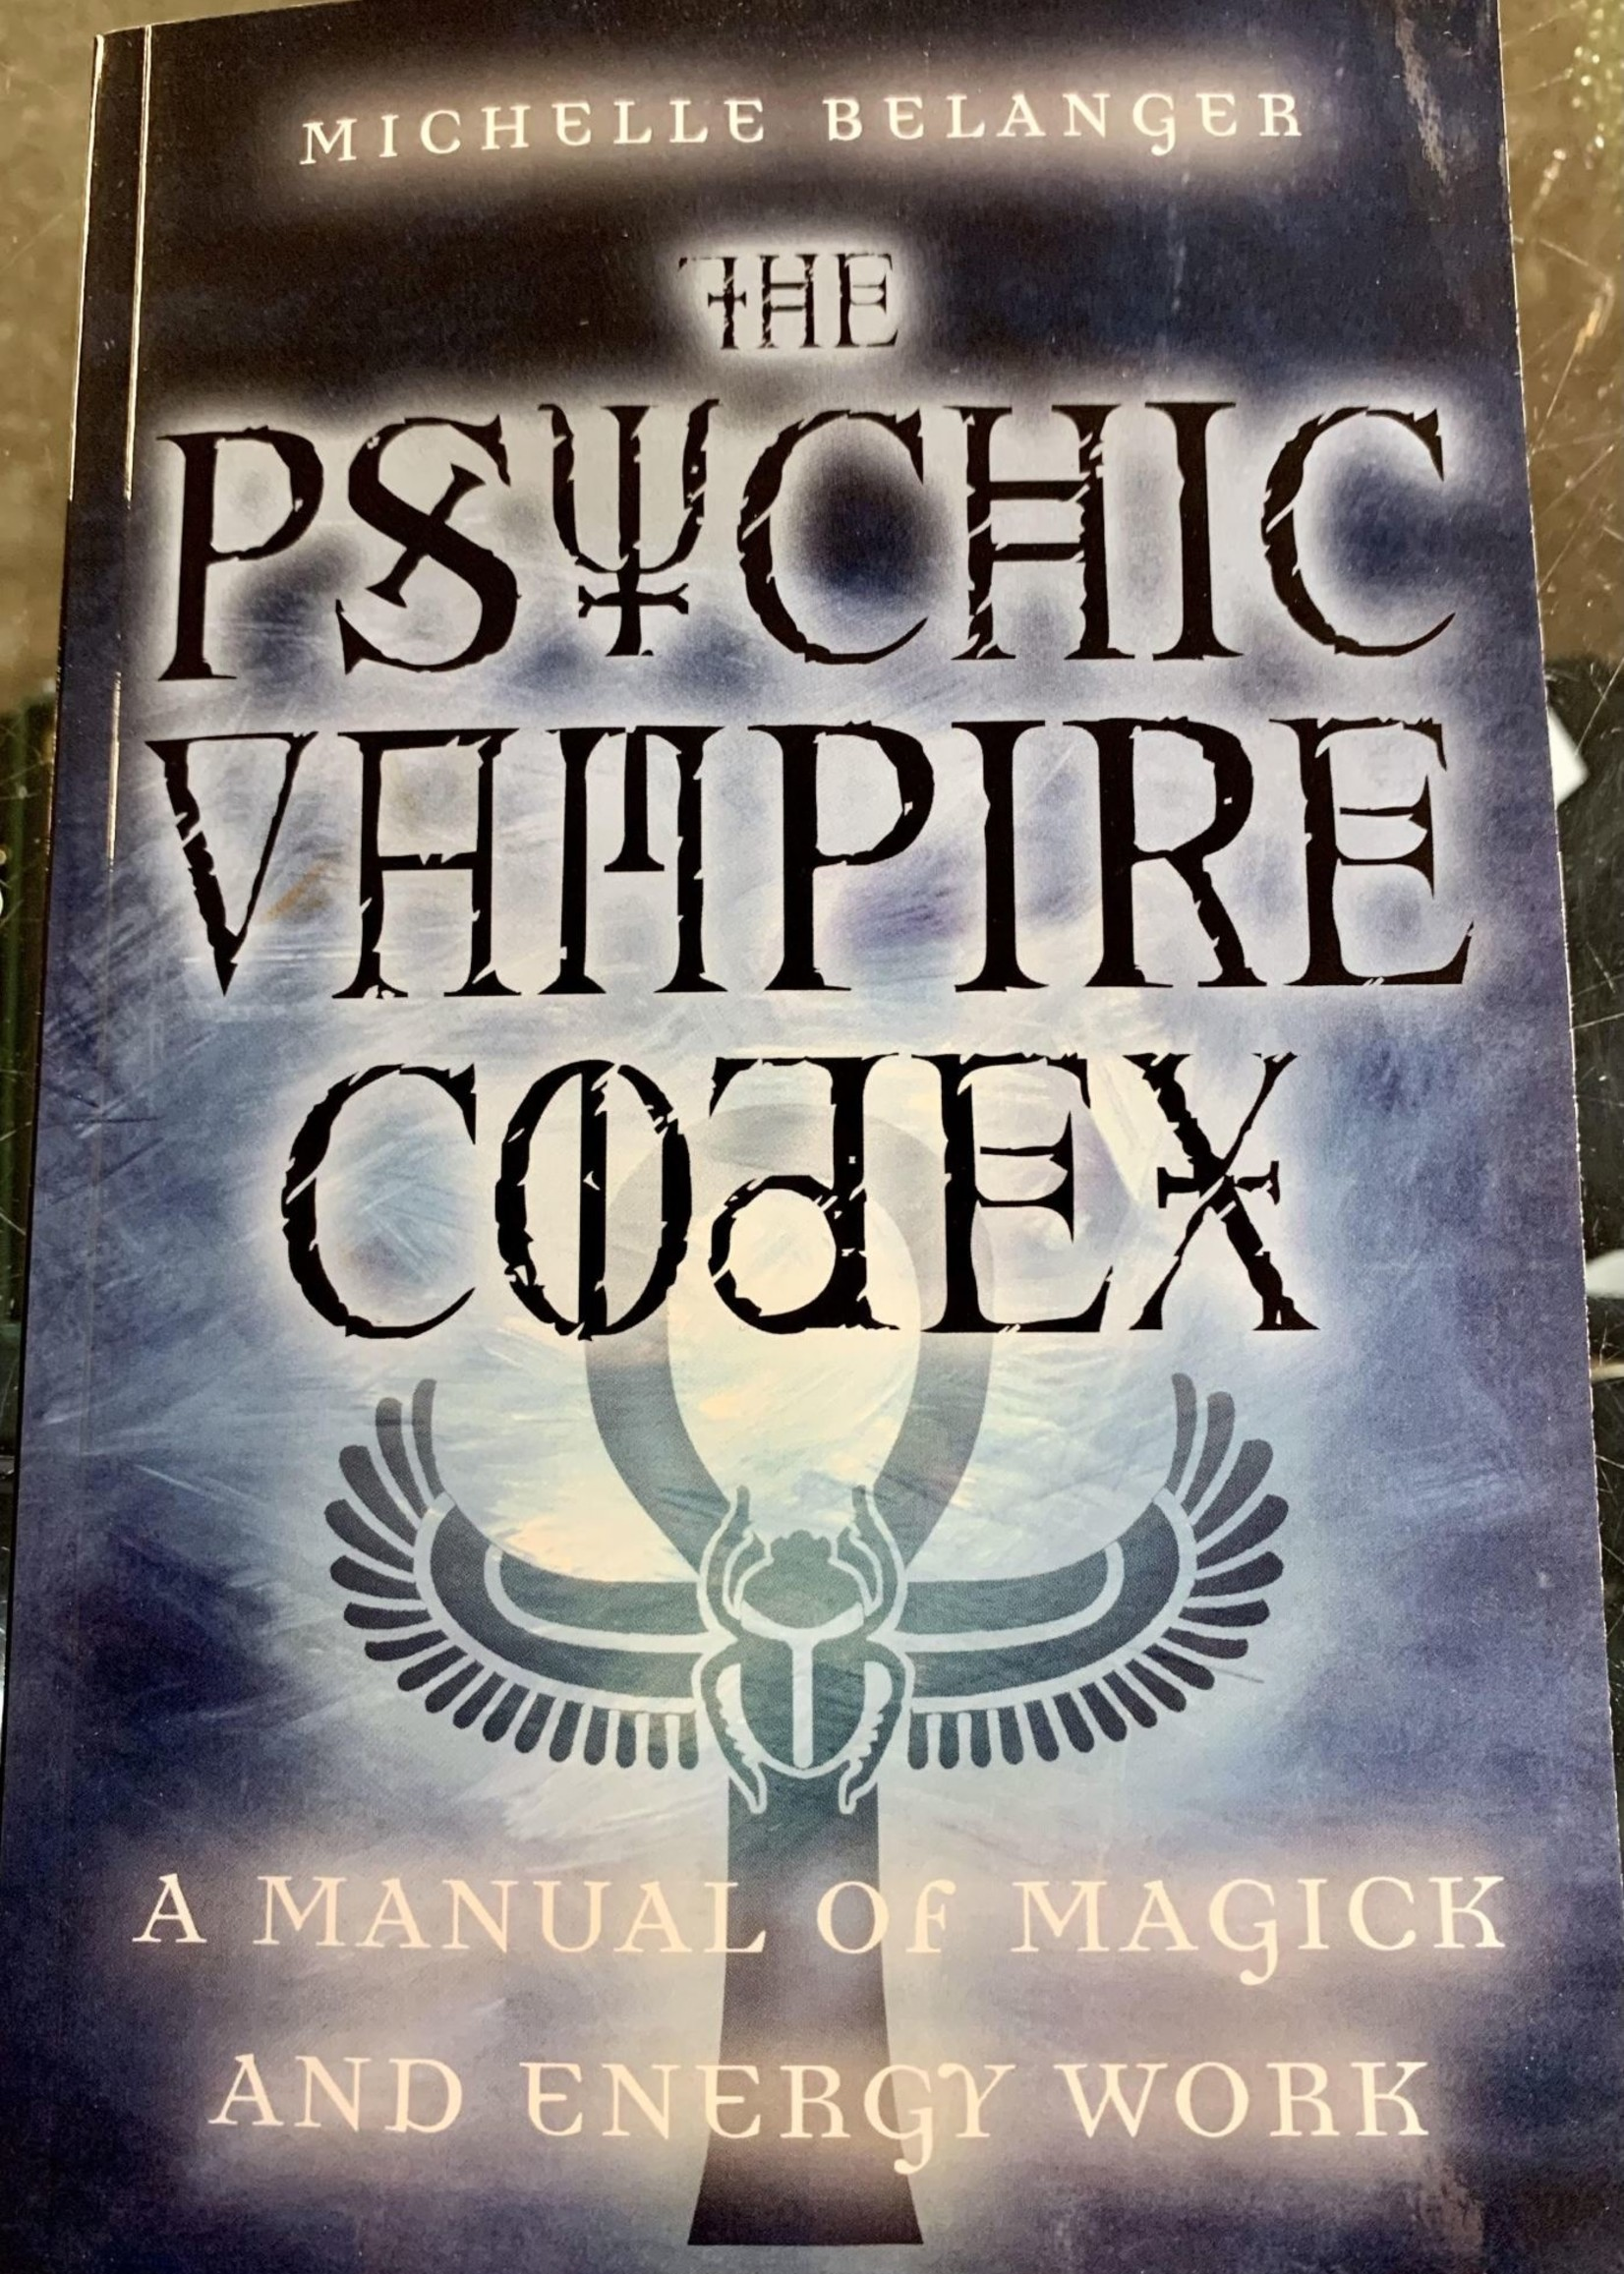 The Psychic Vampire Codex A Manual of Magick and Energy Work - Michelle Belanger